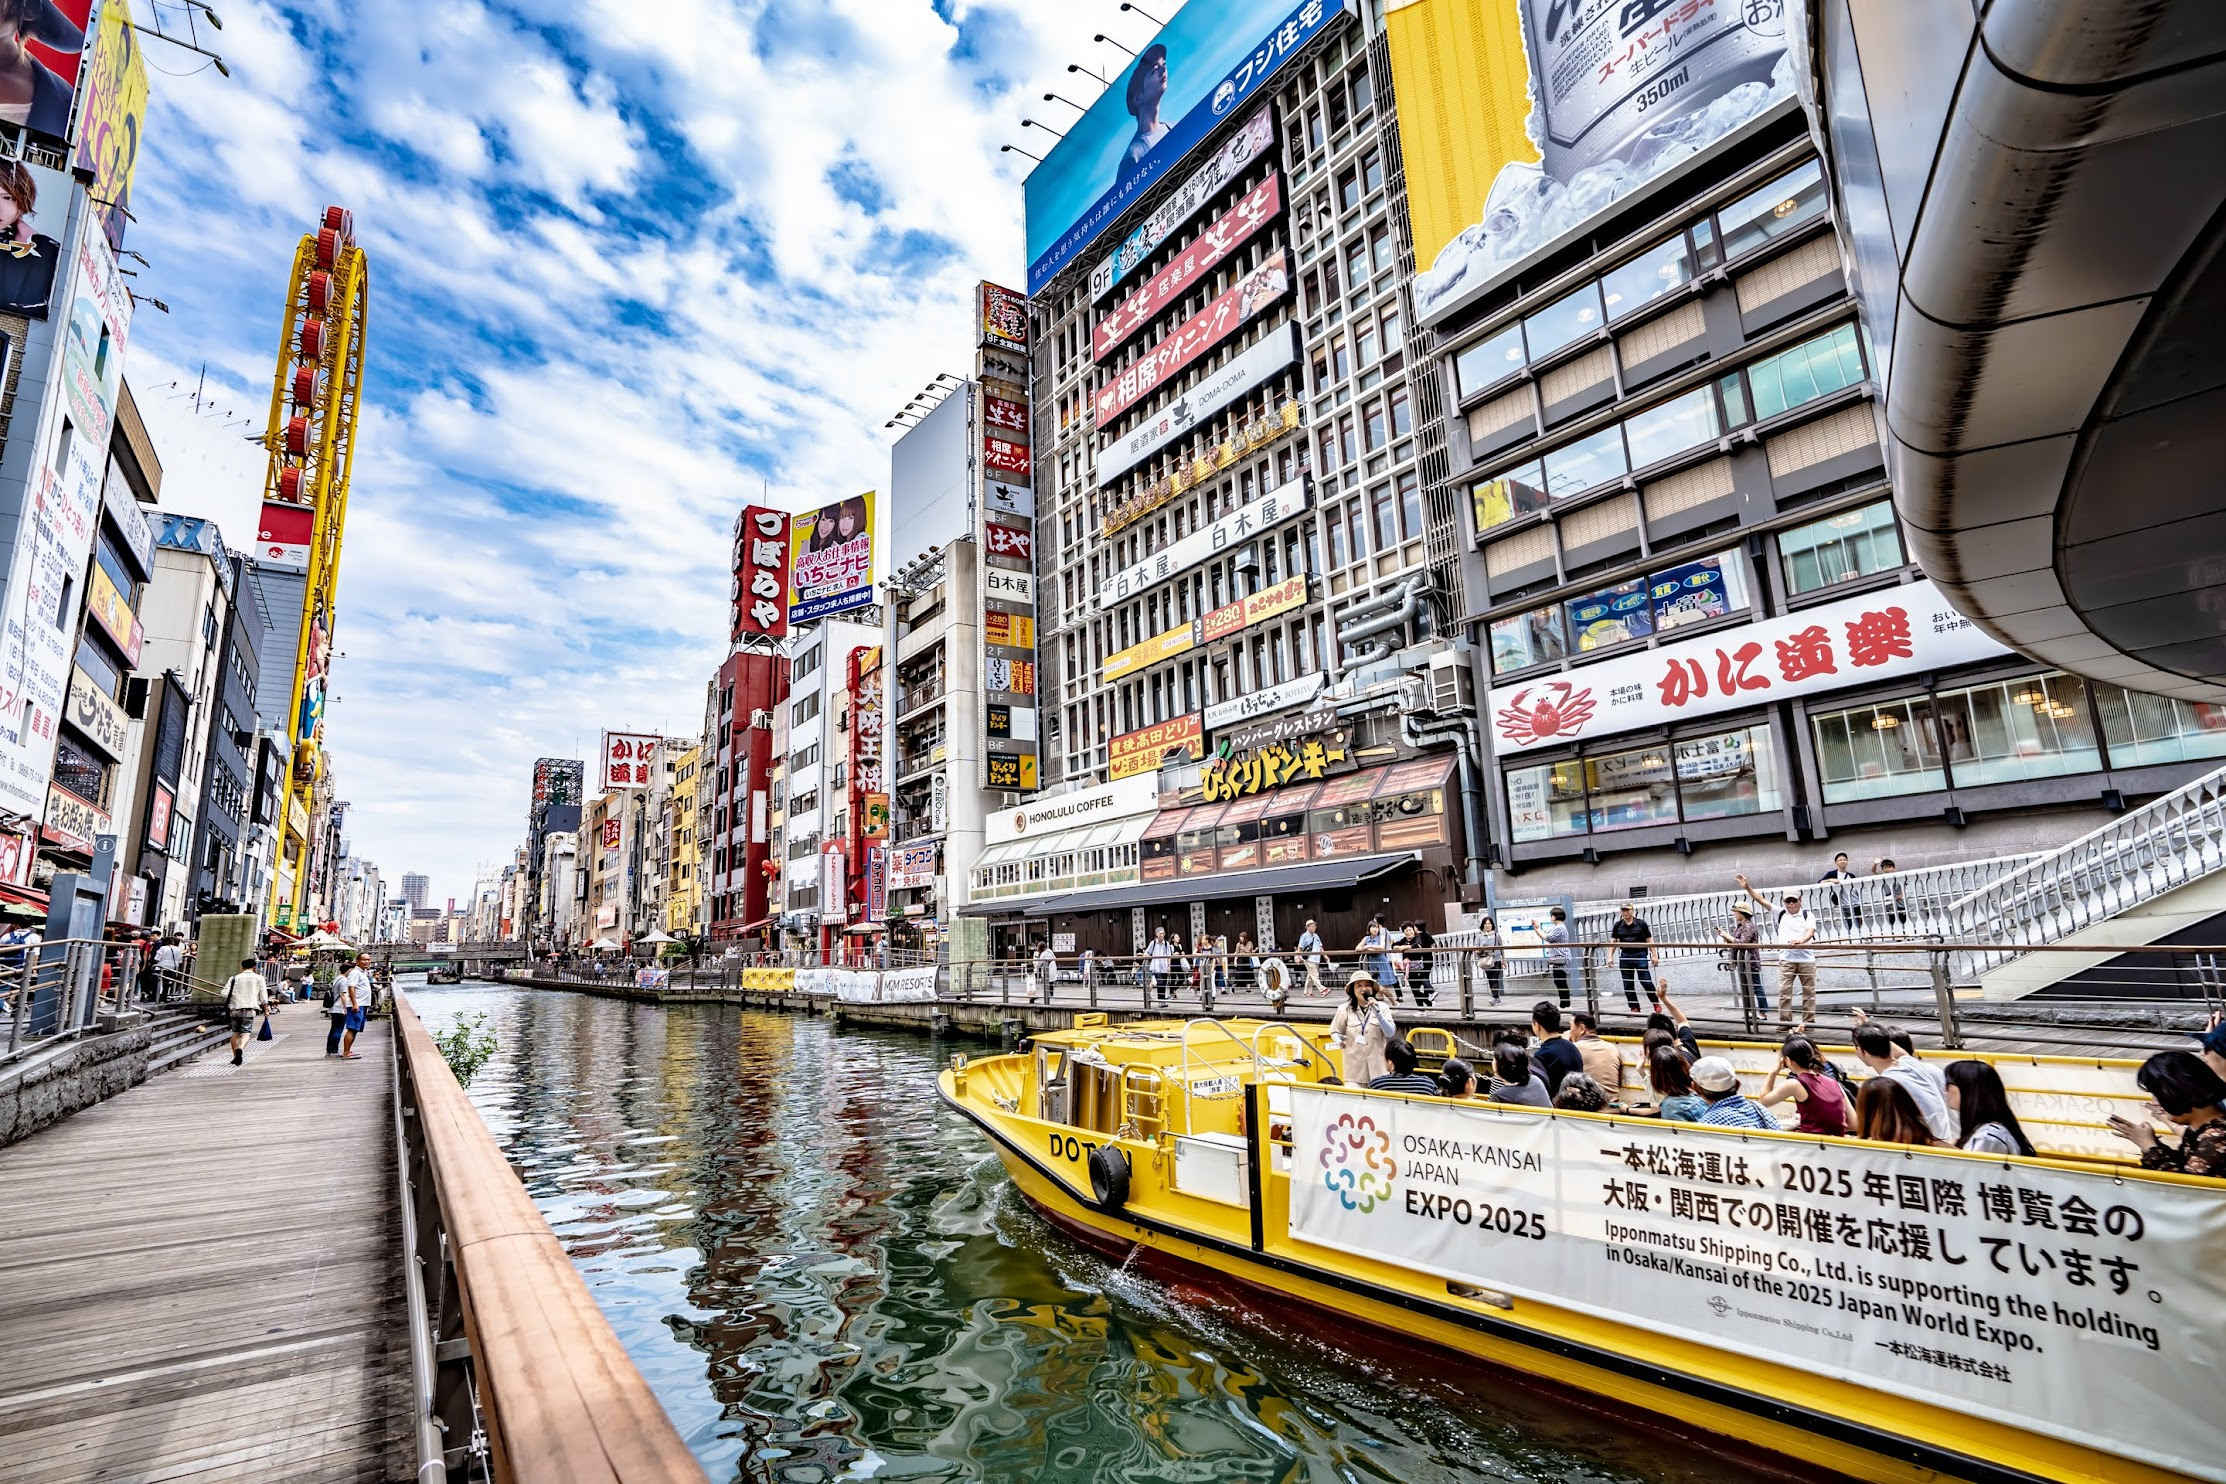 Dotonbori river cruise ship2